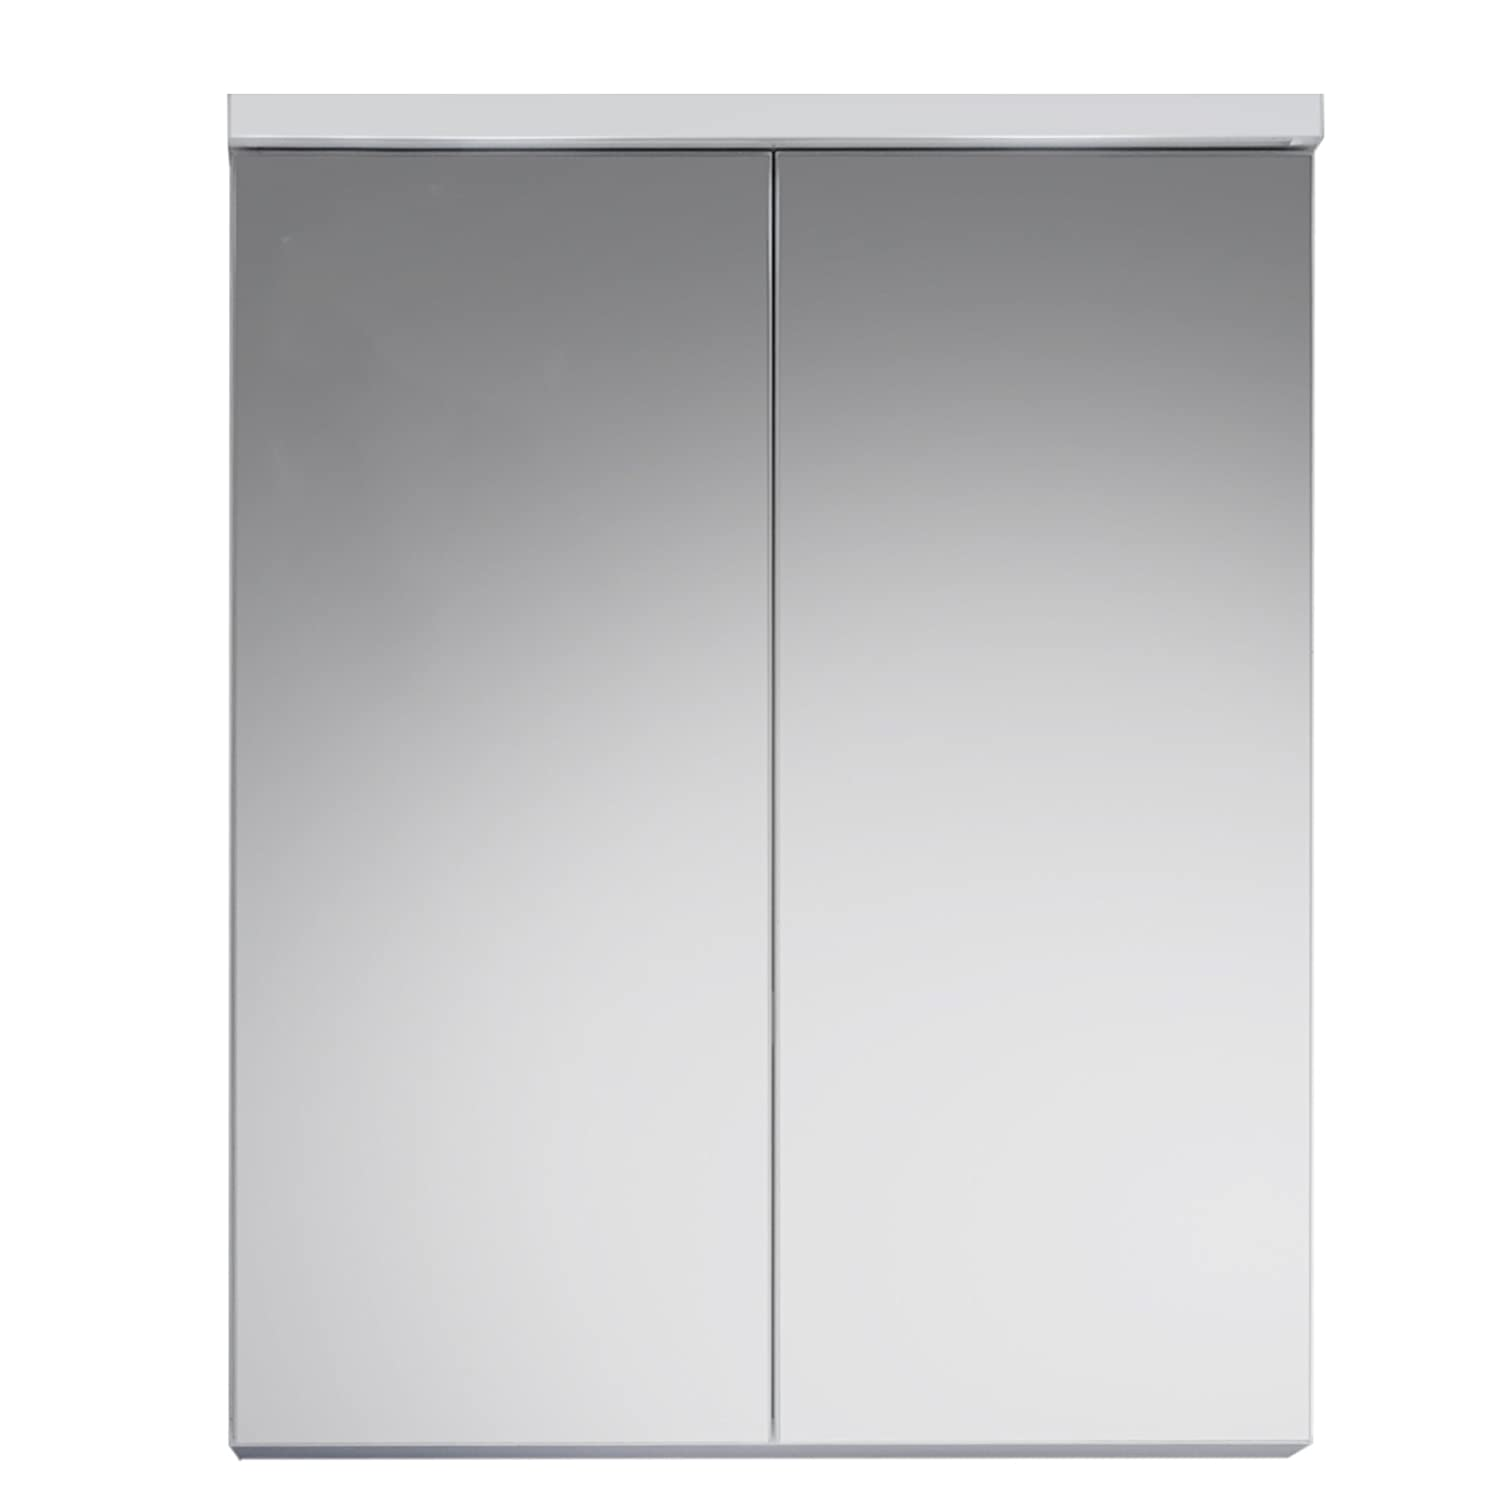 Furnline Nightlife High Gloss Bathroom Under Sink Cabinet, White 132050301